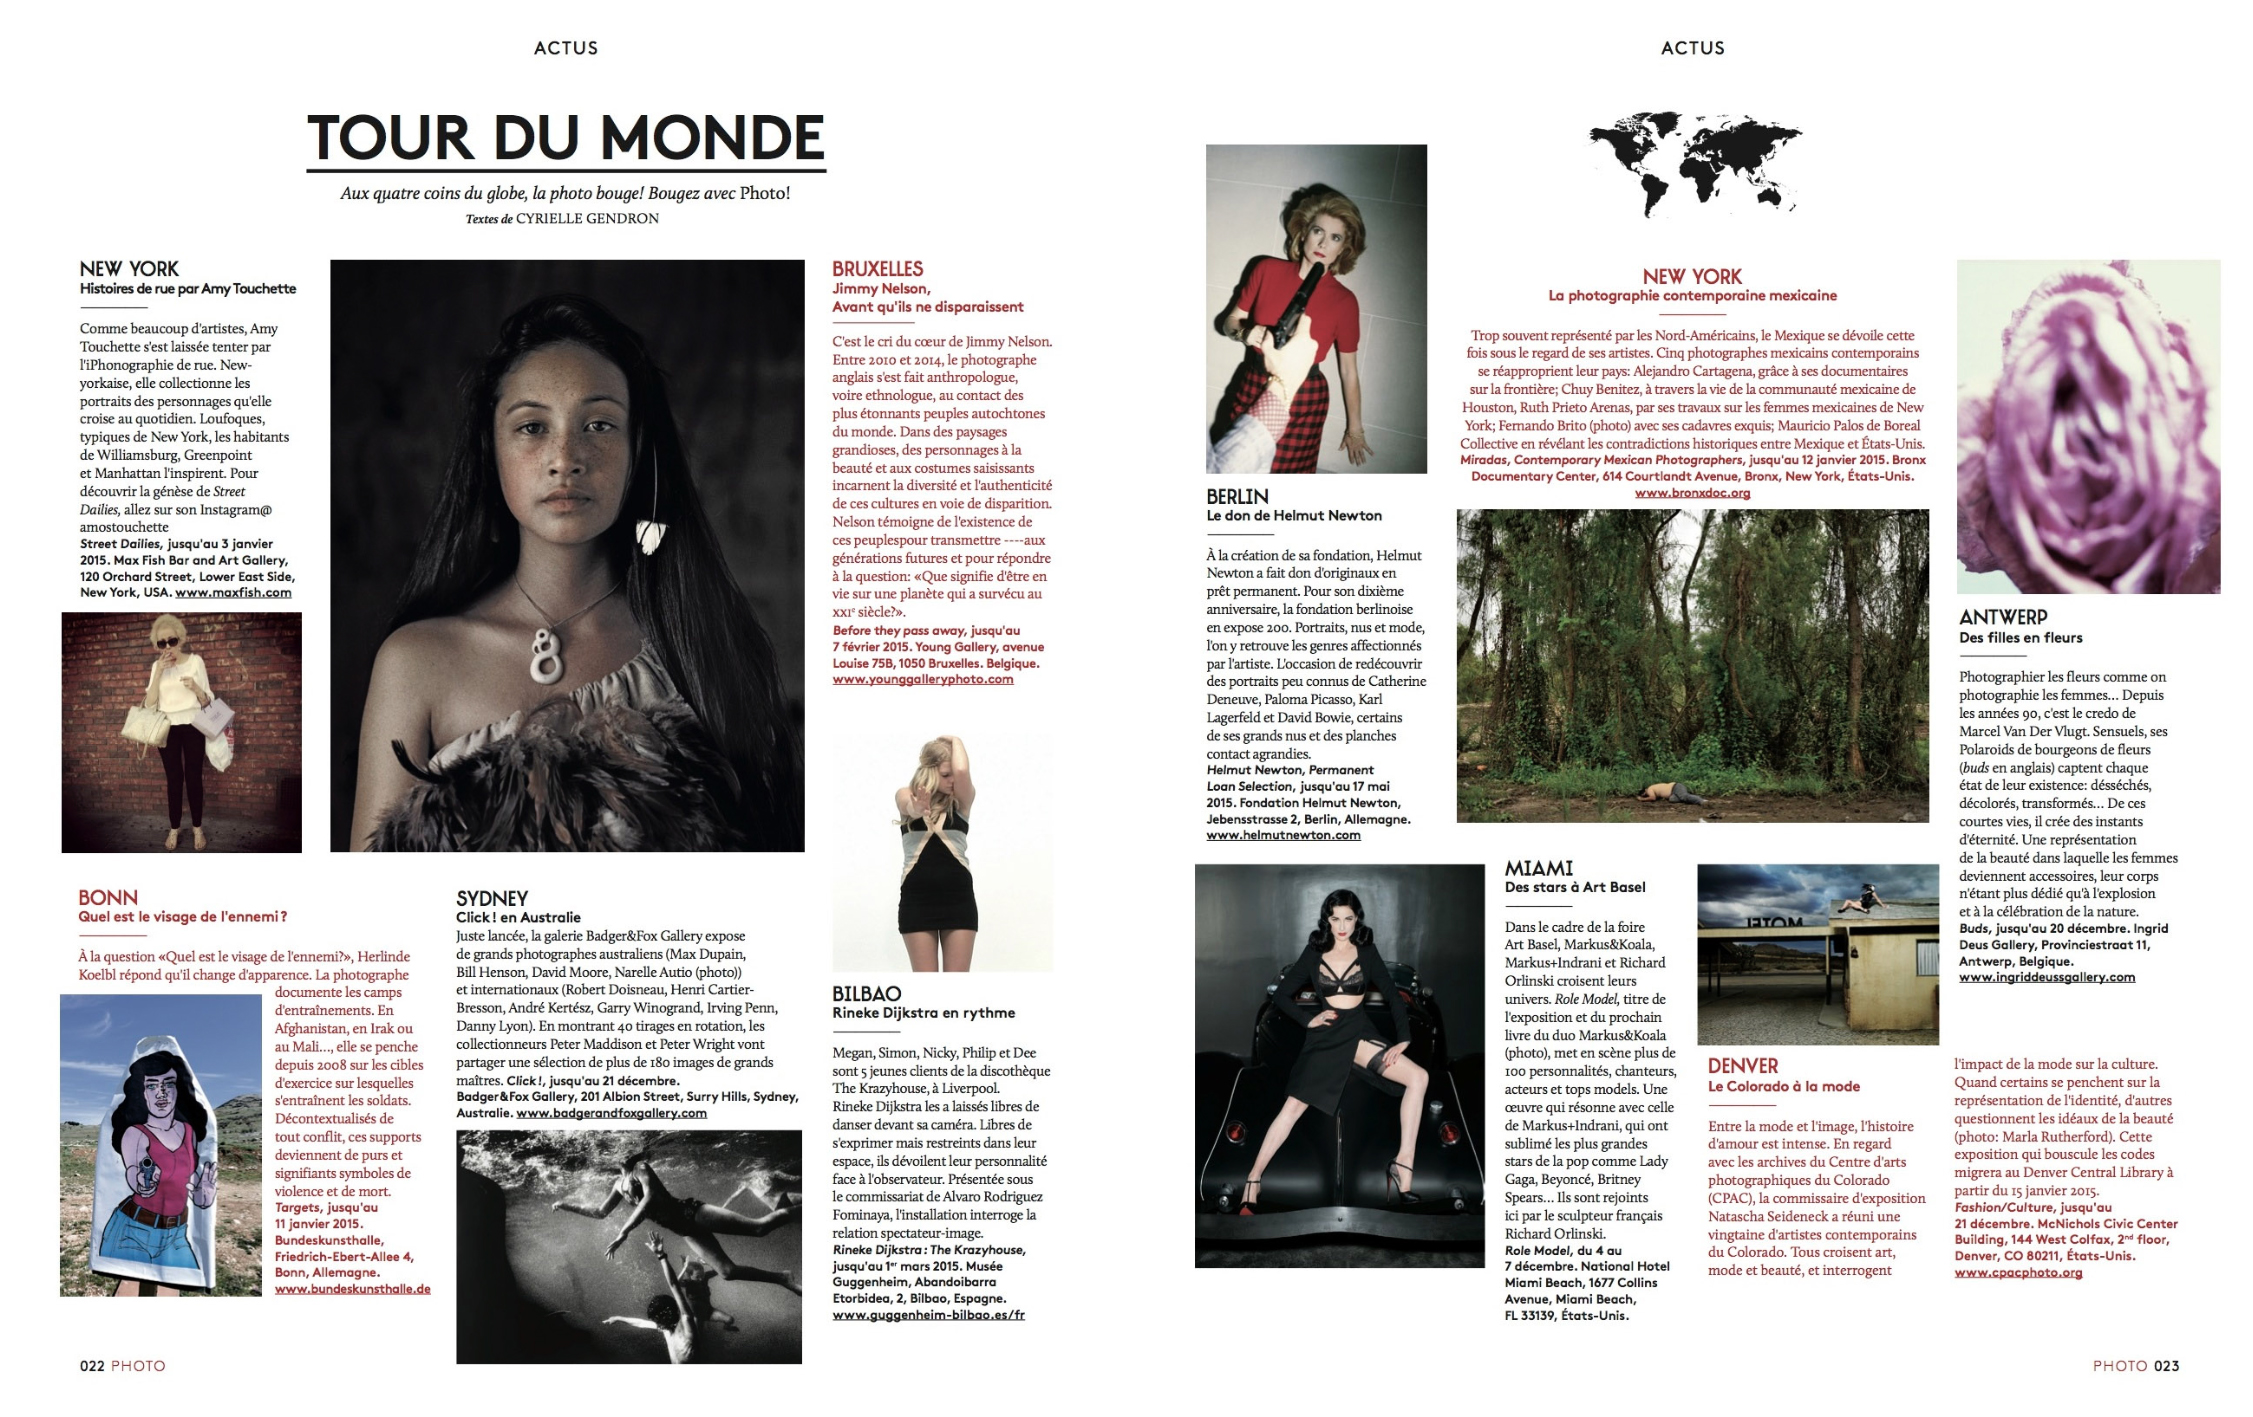 PHOTO Magazine,Street Dailies - DECEMBER 2014 PHOTO magazine highlights Street Dailies in its Tour du Monde section. PHOTO is a French magazine that focuses on artistic aspects of photography.